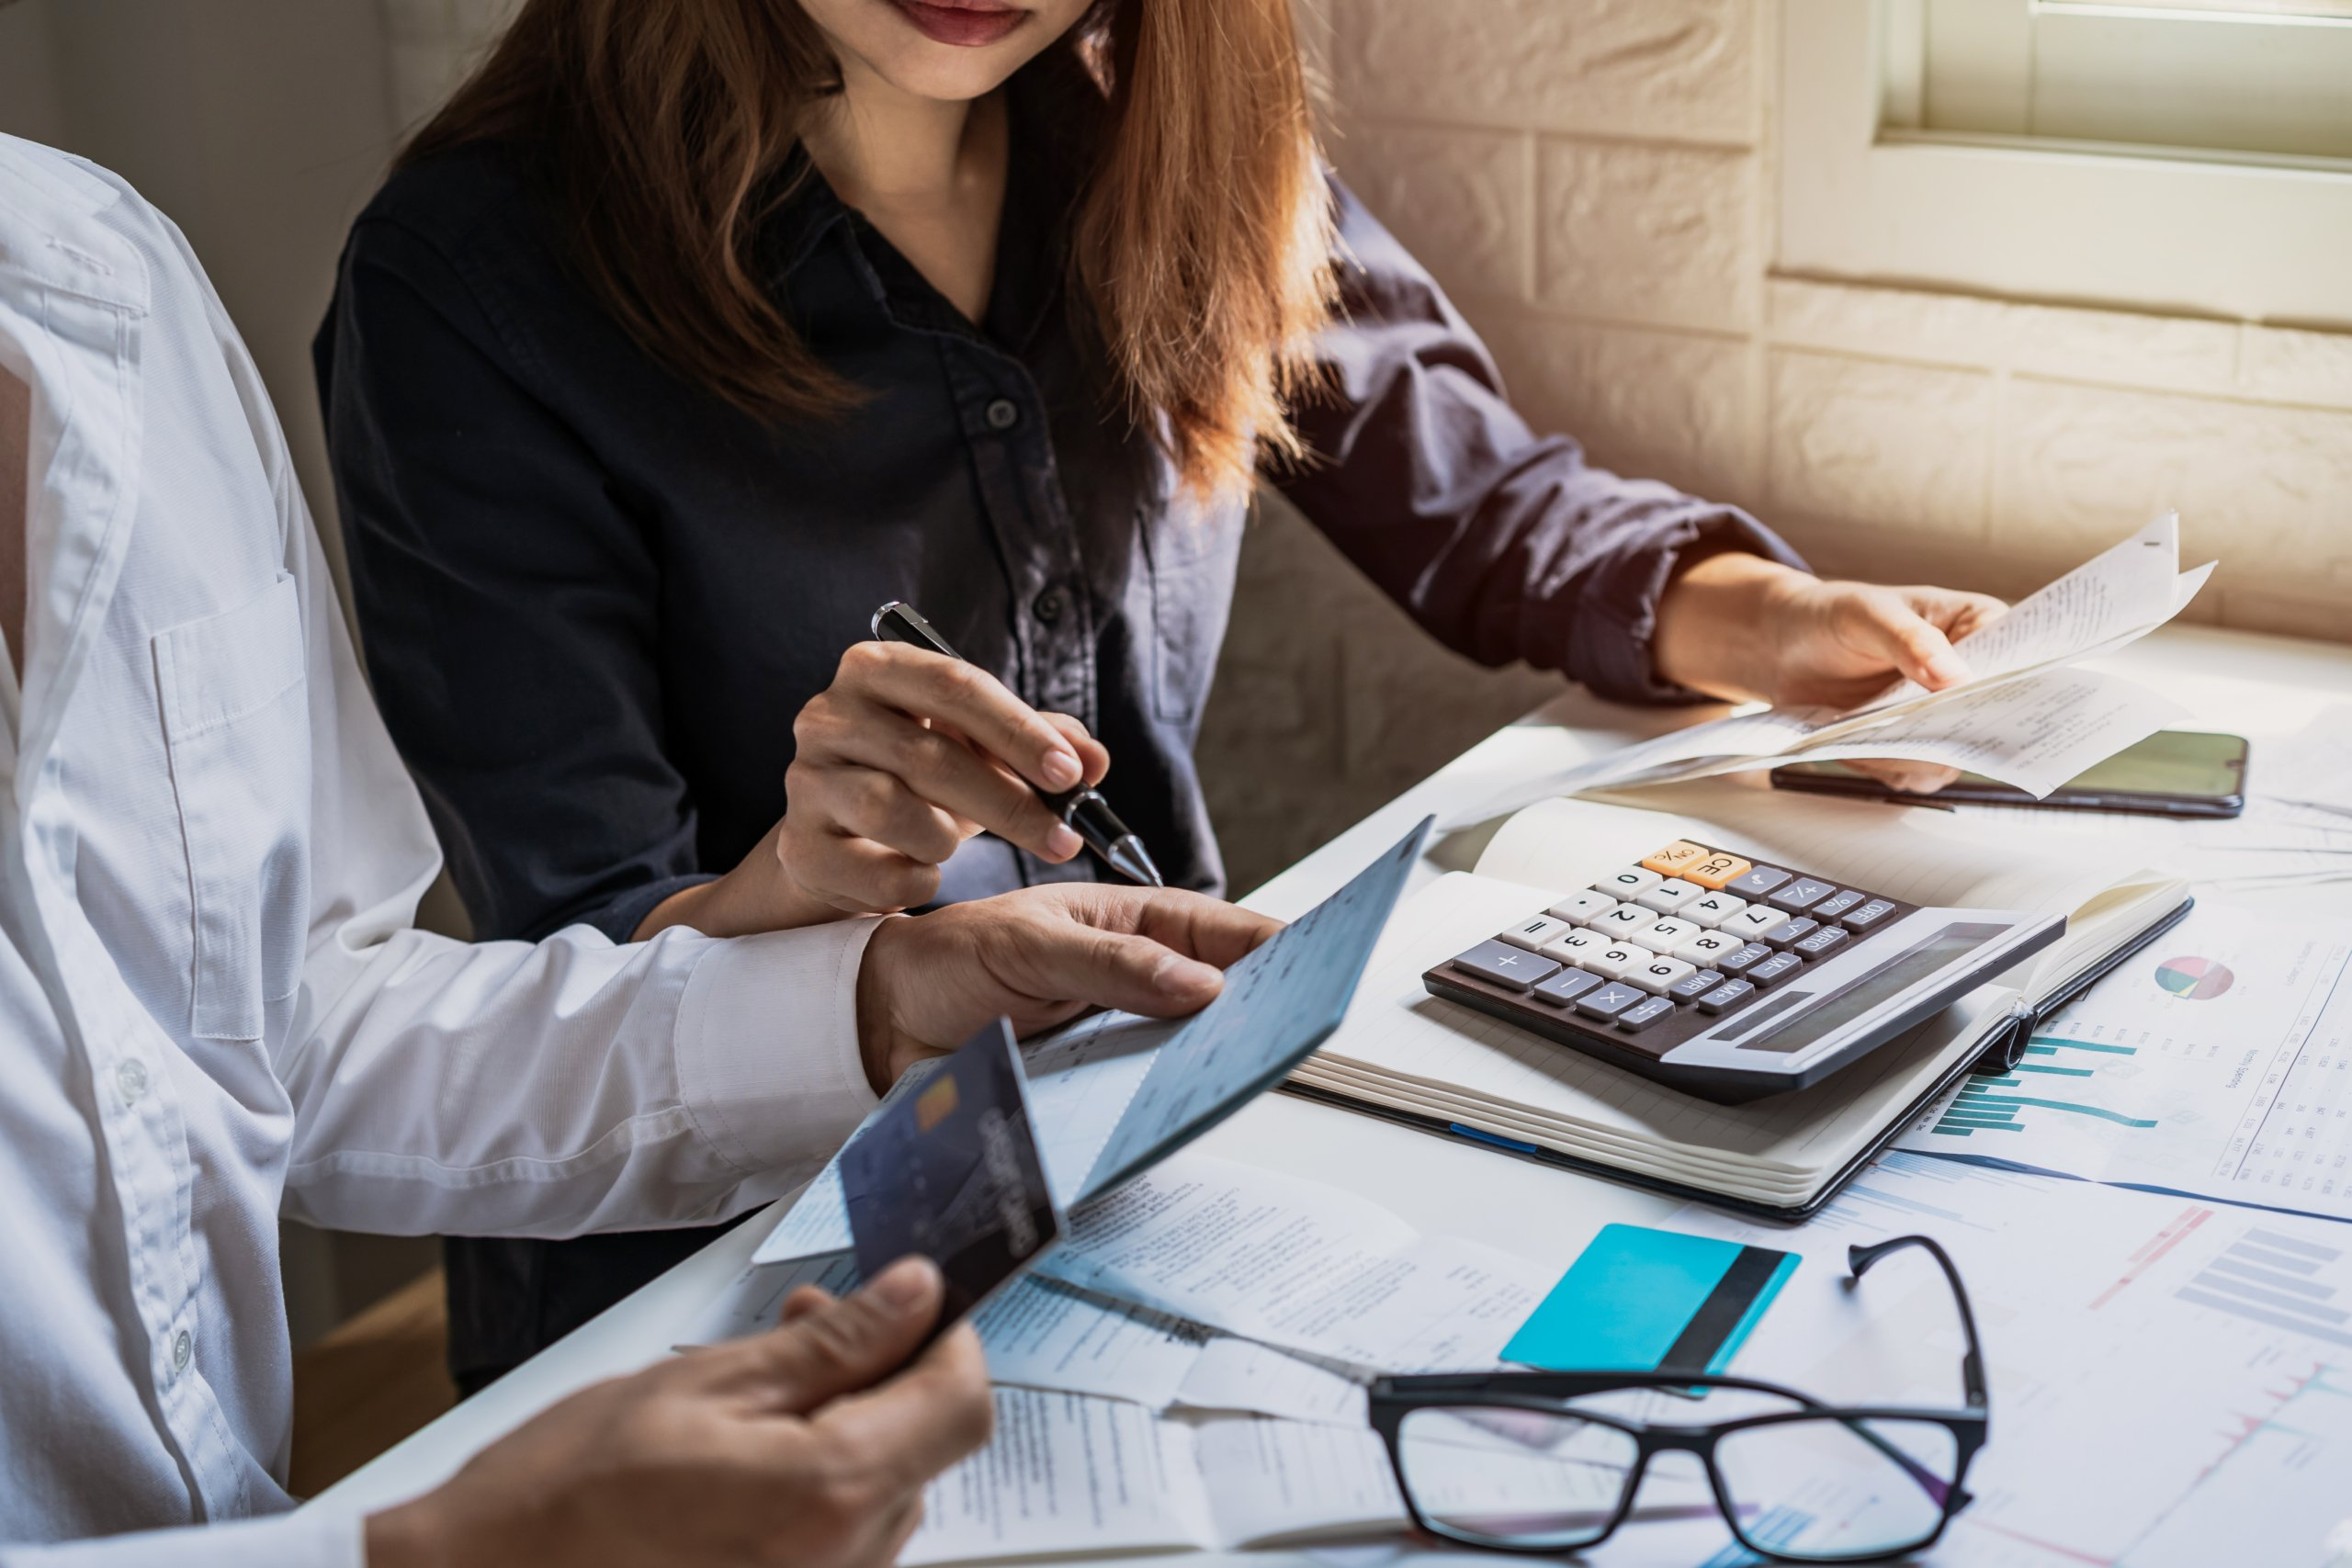 The 2020 Credit Card Debt Analysis & How To Lower It